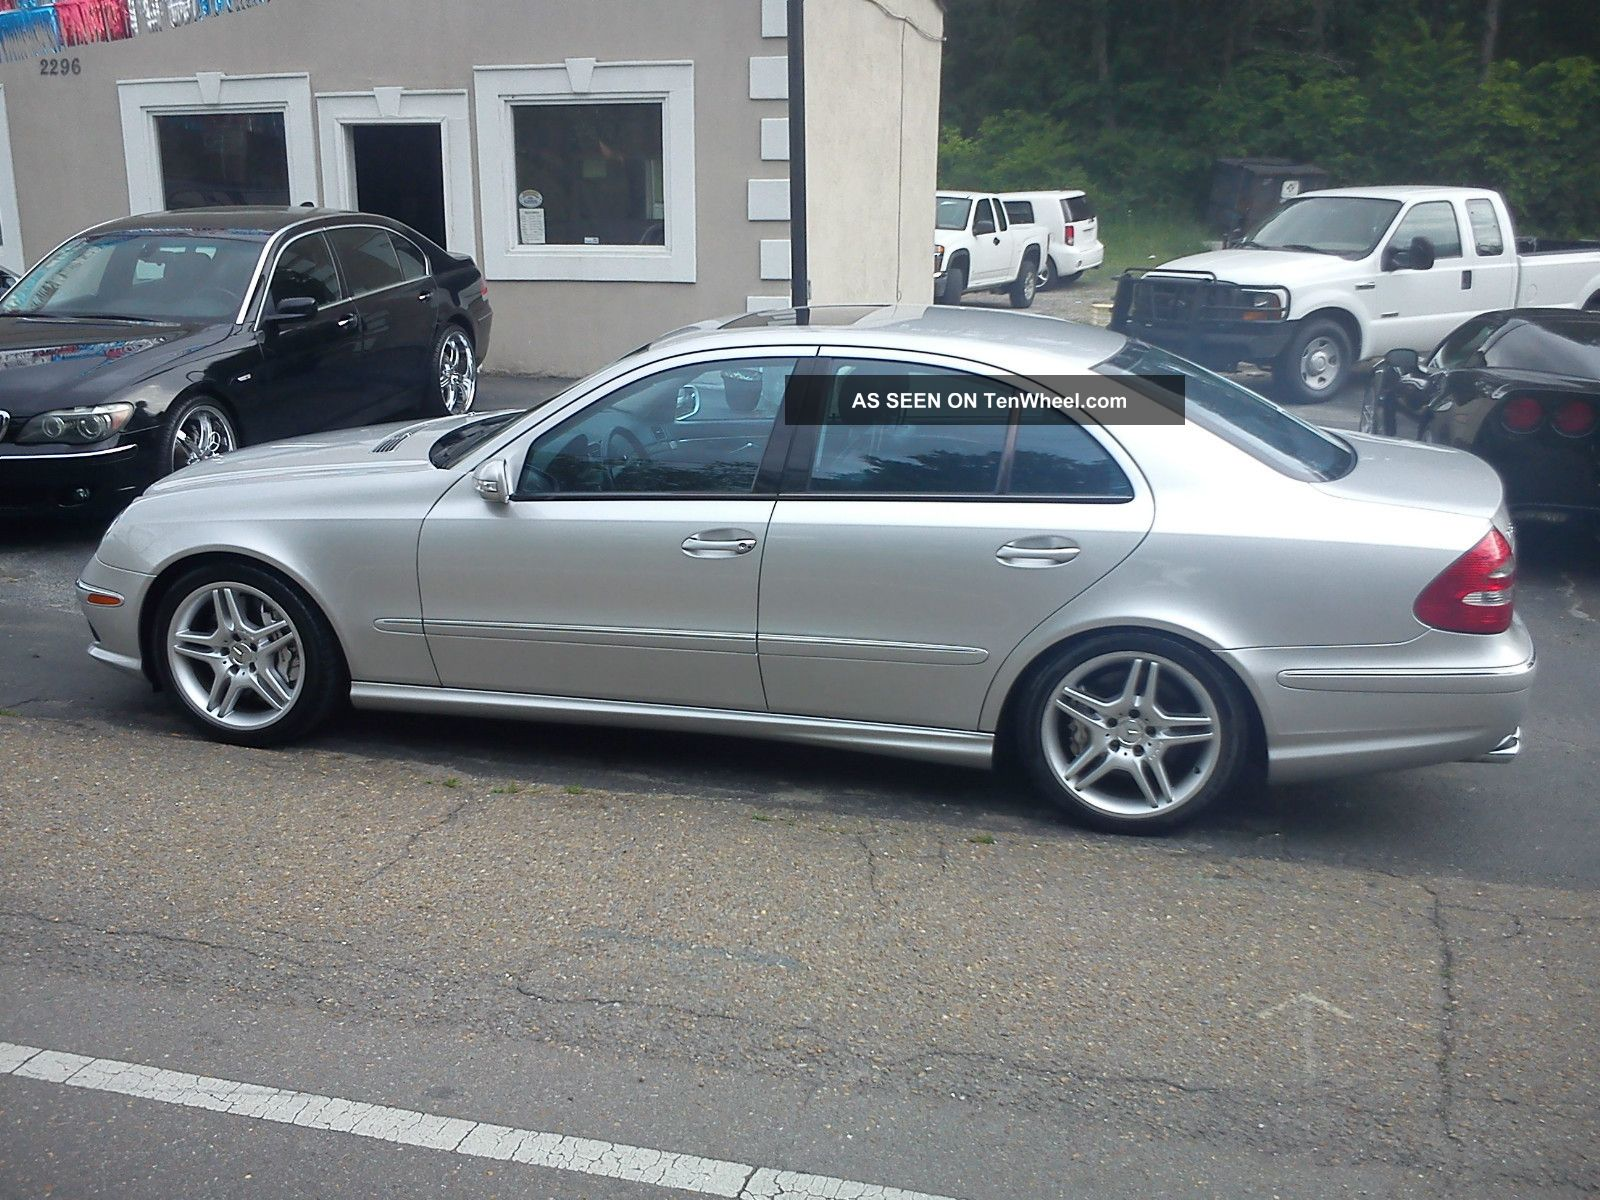 2005 mercedes benz e55 amg supercharged 469hp supercar for 2005 mercedes benz e55 amg